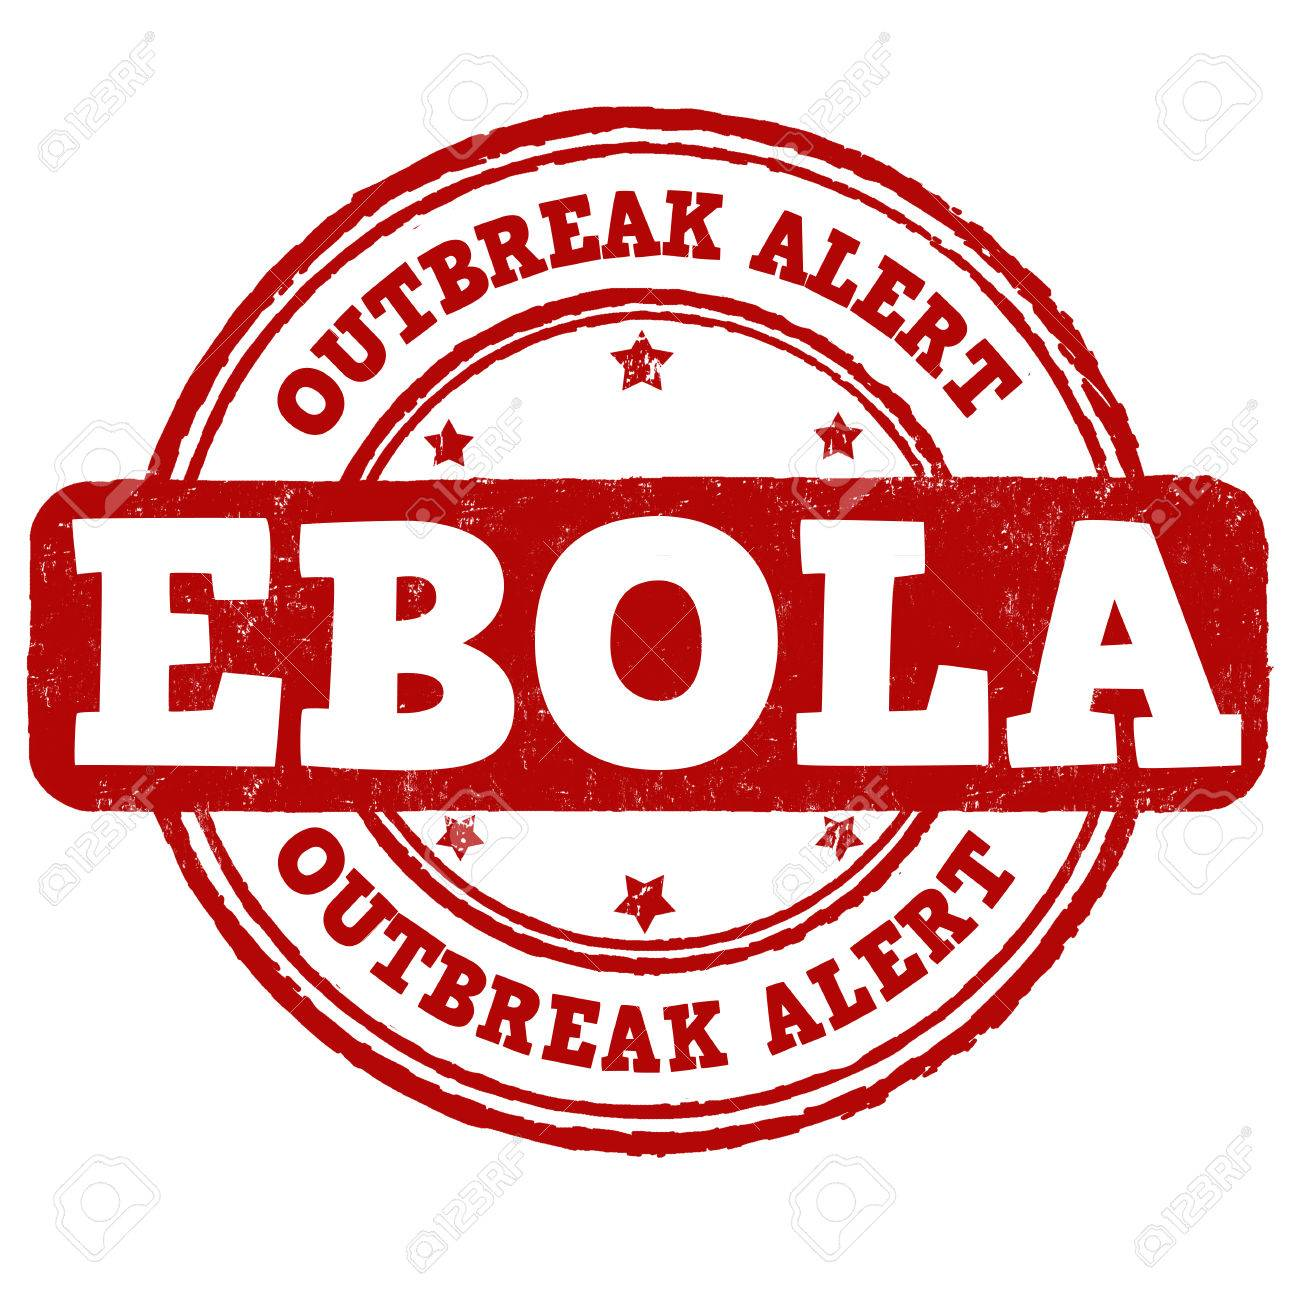 Ebola Grunge Rubber Stamp On White Background Vector Illustration 1300x1300